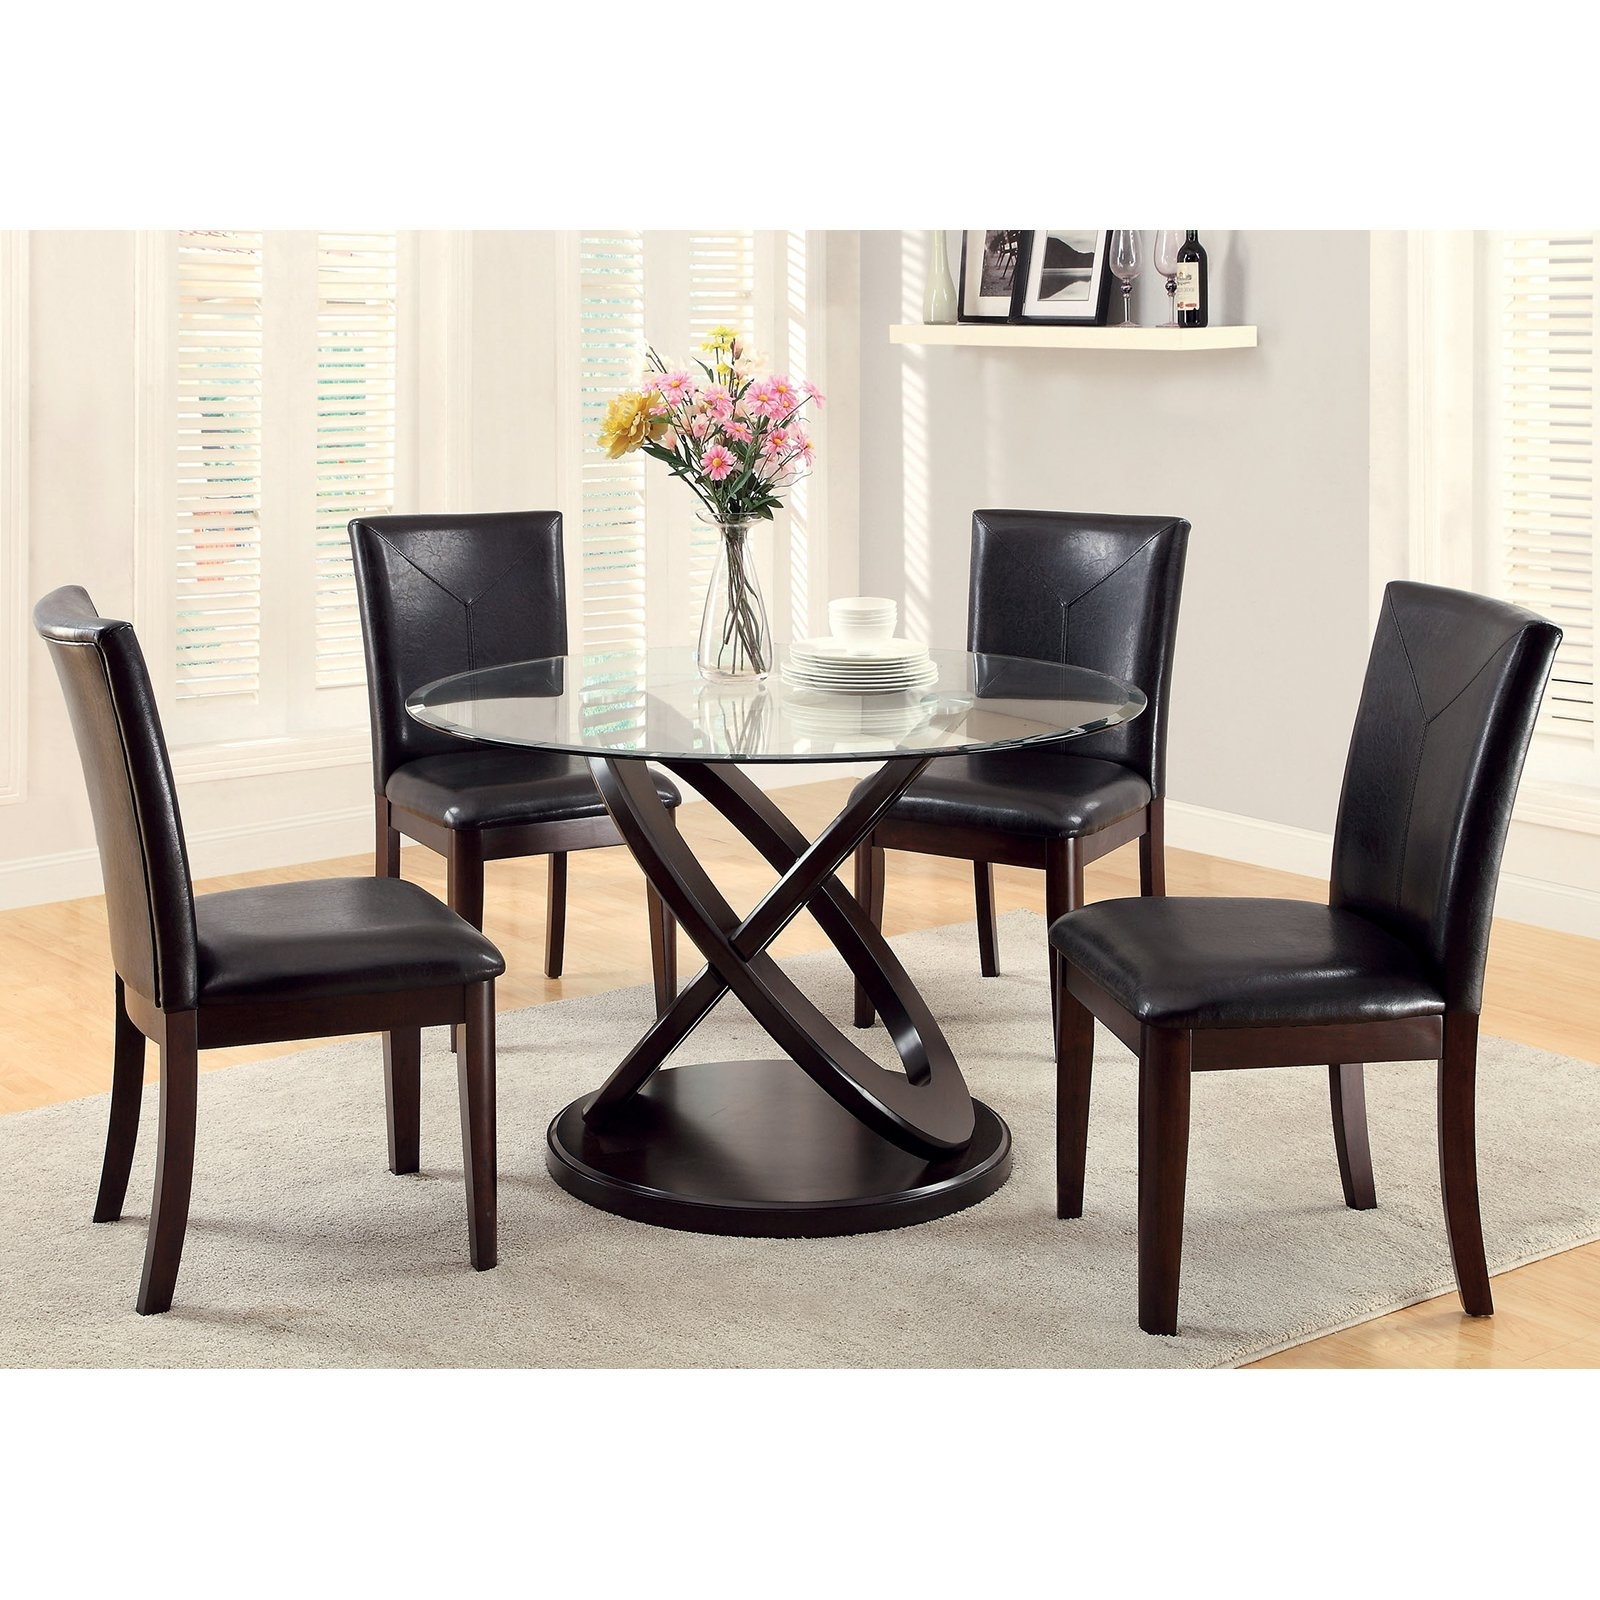 Well Liked Furniture Of America Ollivander 5 Piece Glass Top Dining Table Set Throughout Glass Dining Tables Sets (View 25 of 25)